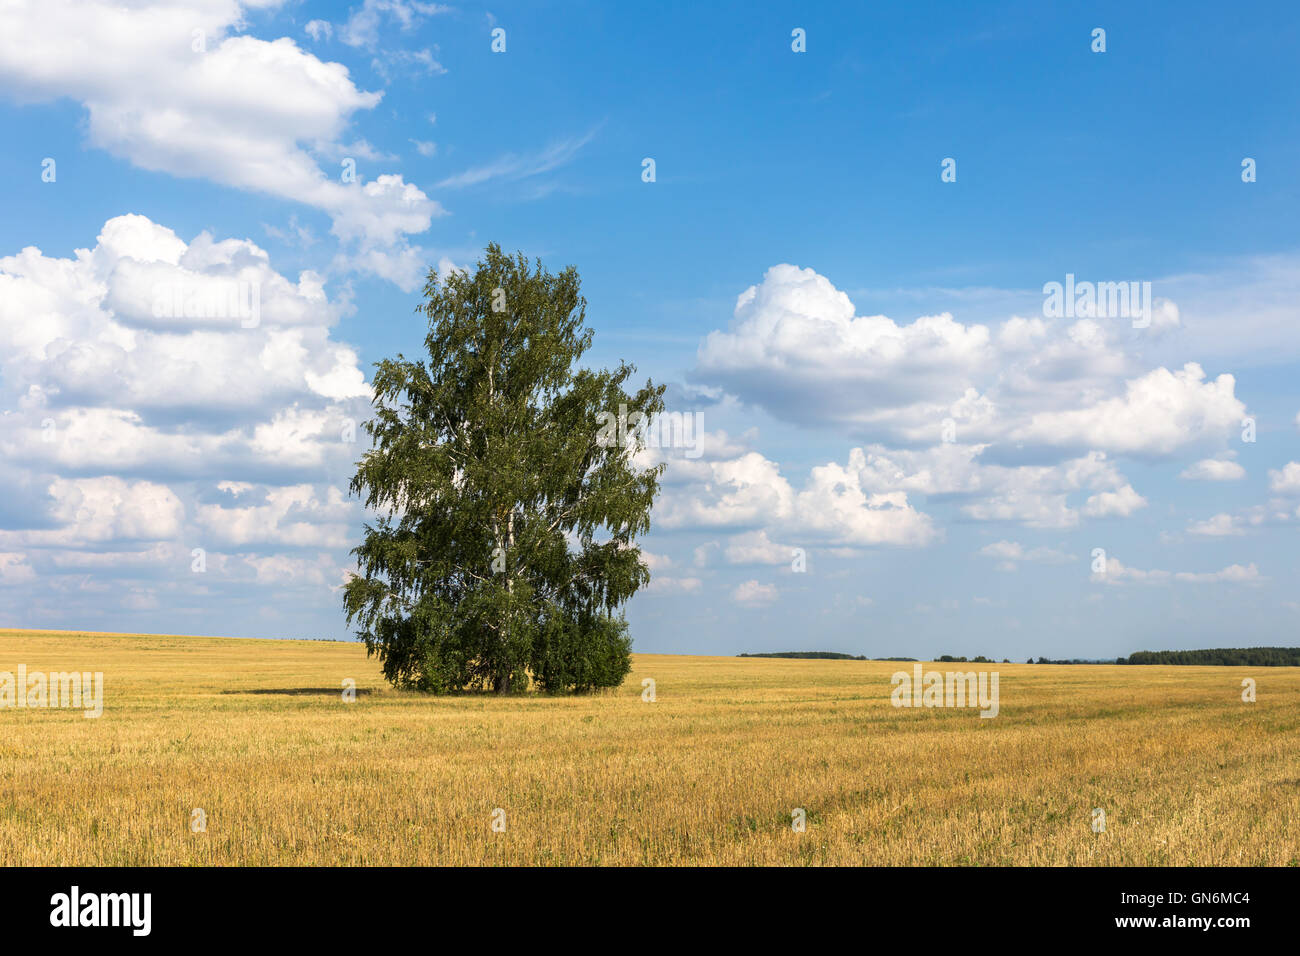 Lonely birch in a field. - Stock Image